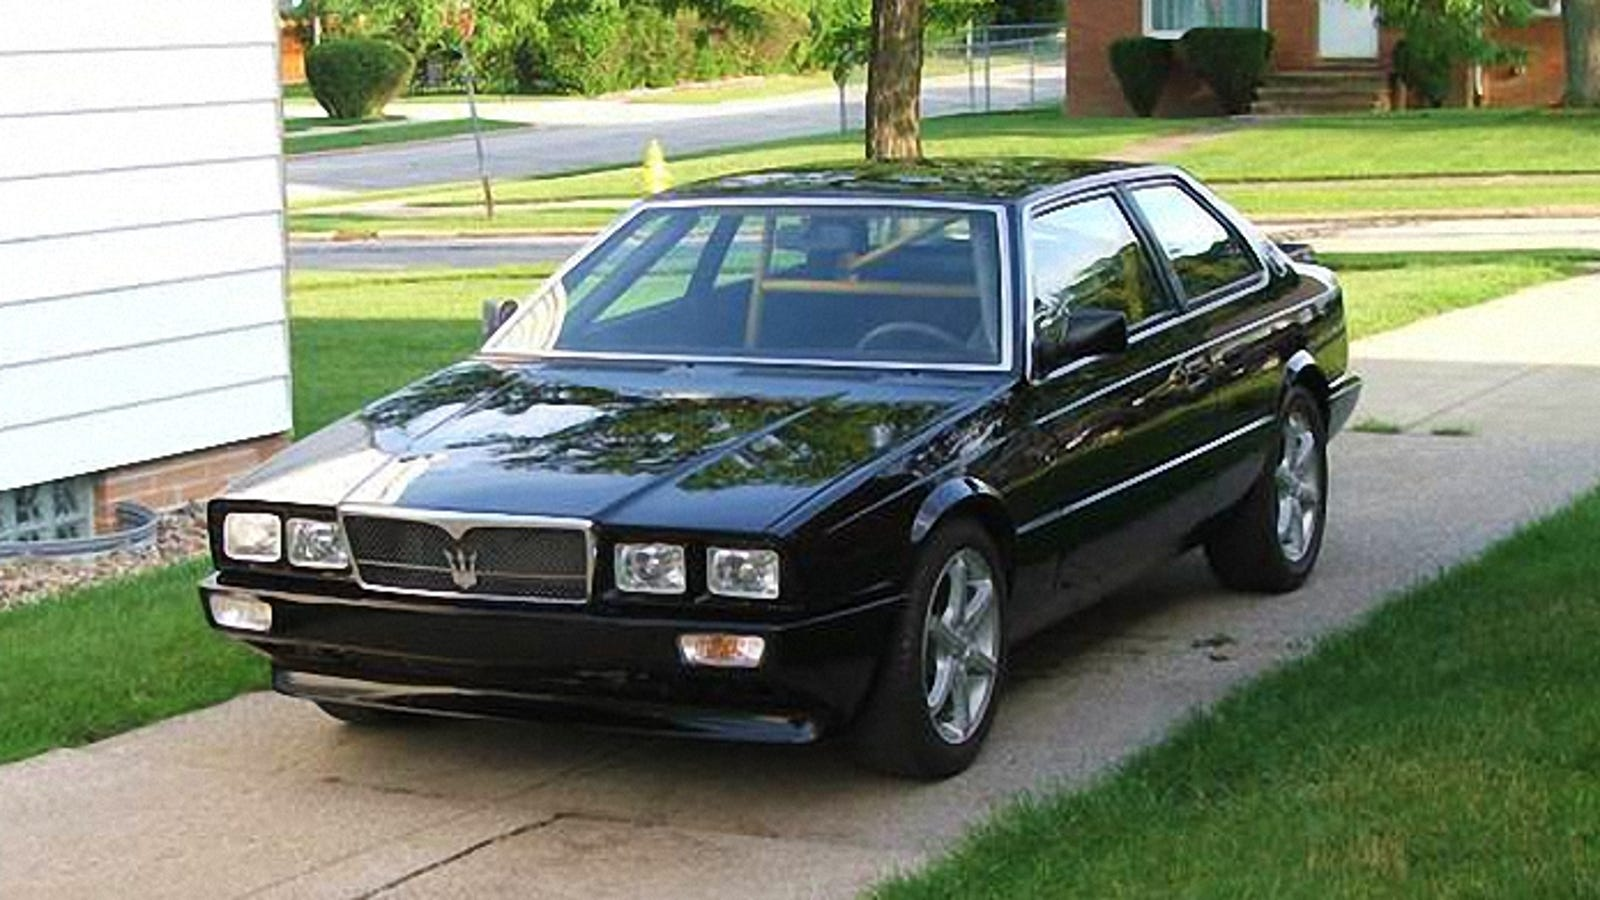 For $6,500, This 1985 Maserati Biturbo is a Biturbo No More